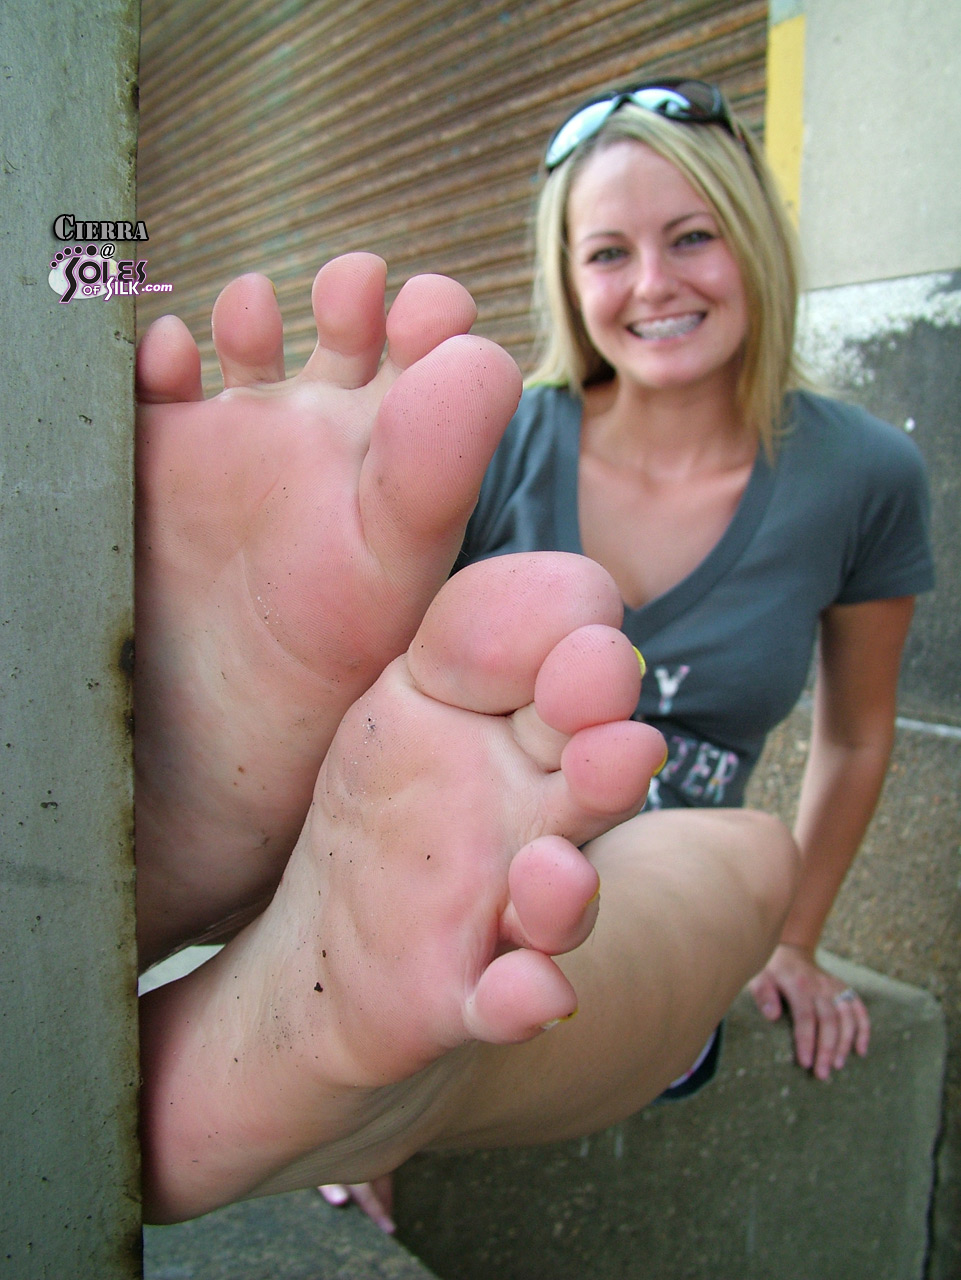 image Cute girls smelly socks and feet after a day out joi